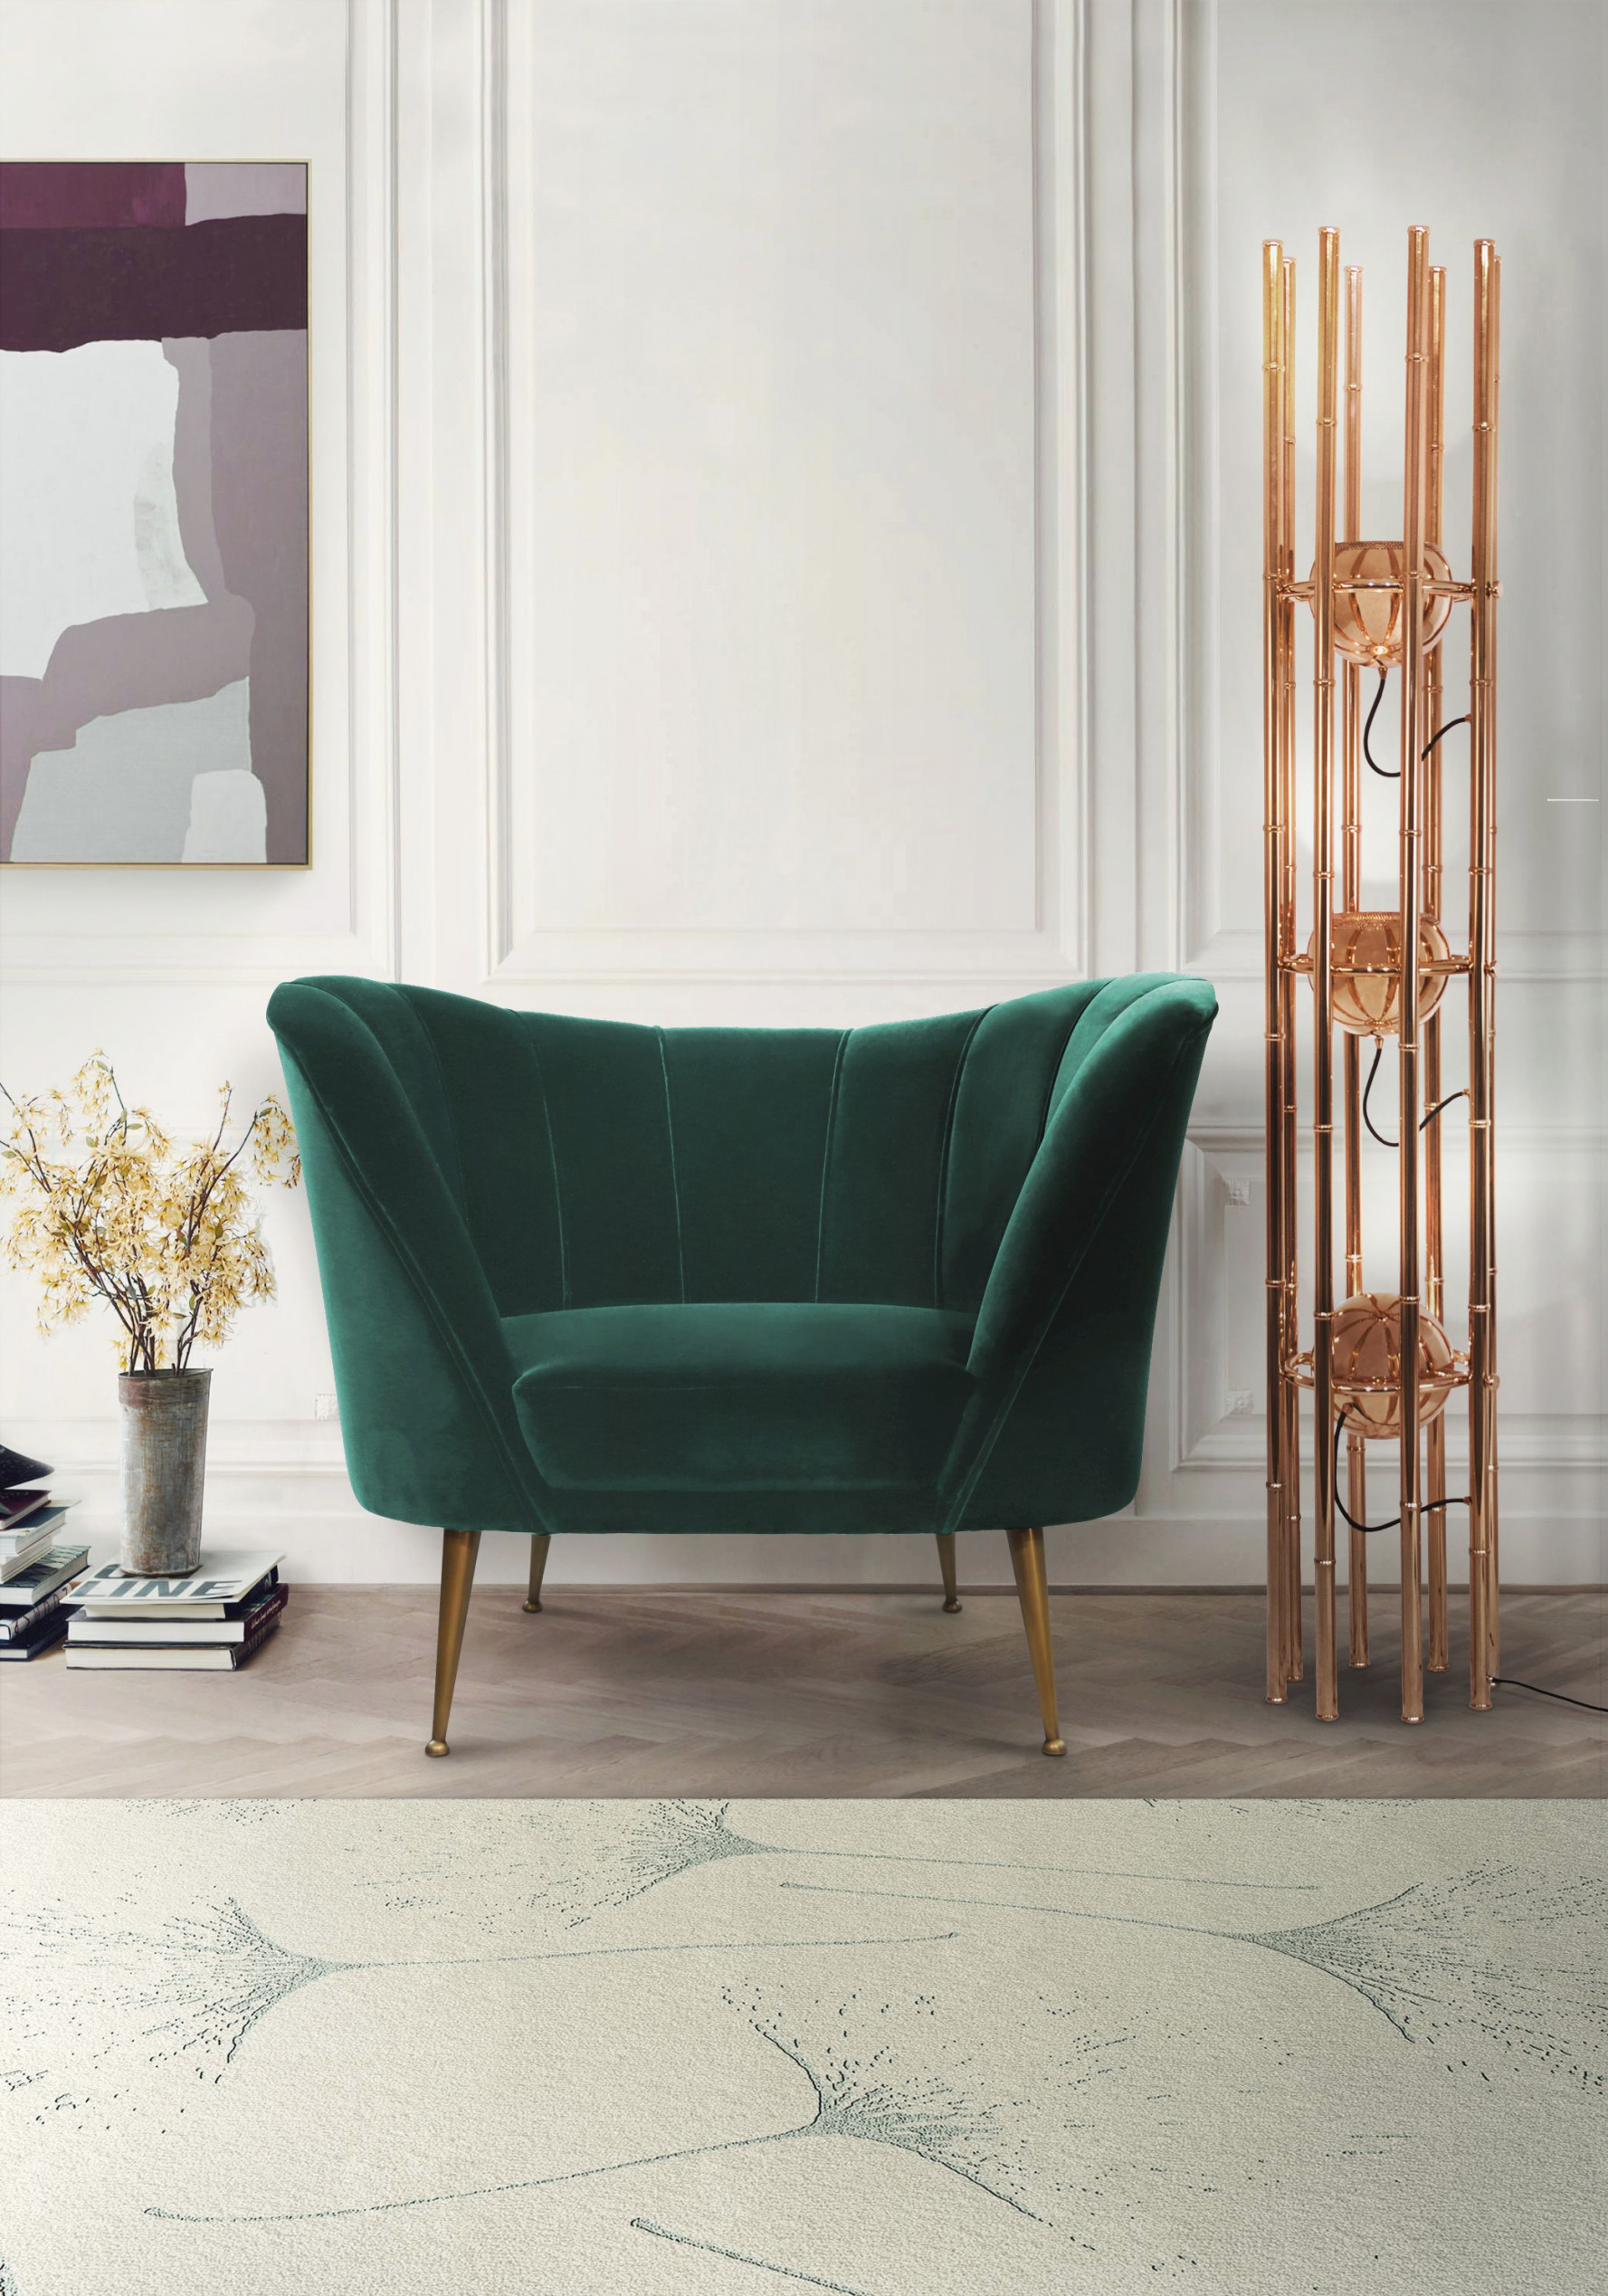 8 Must-Have Living Room Chairs That Will Be Trendy This within Modern Chairs For Living Room